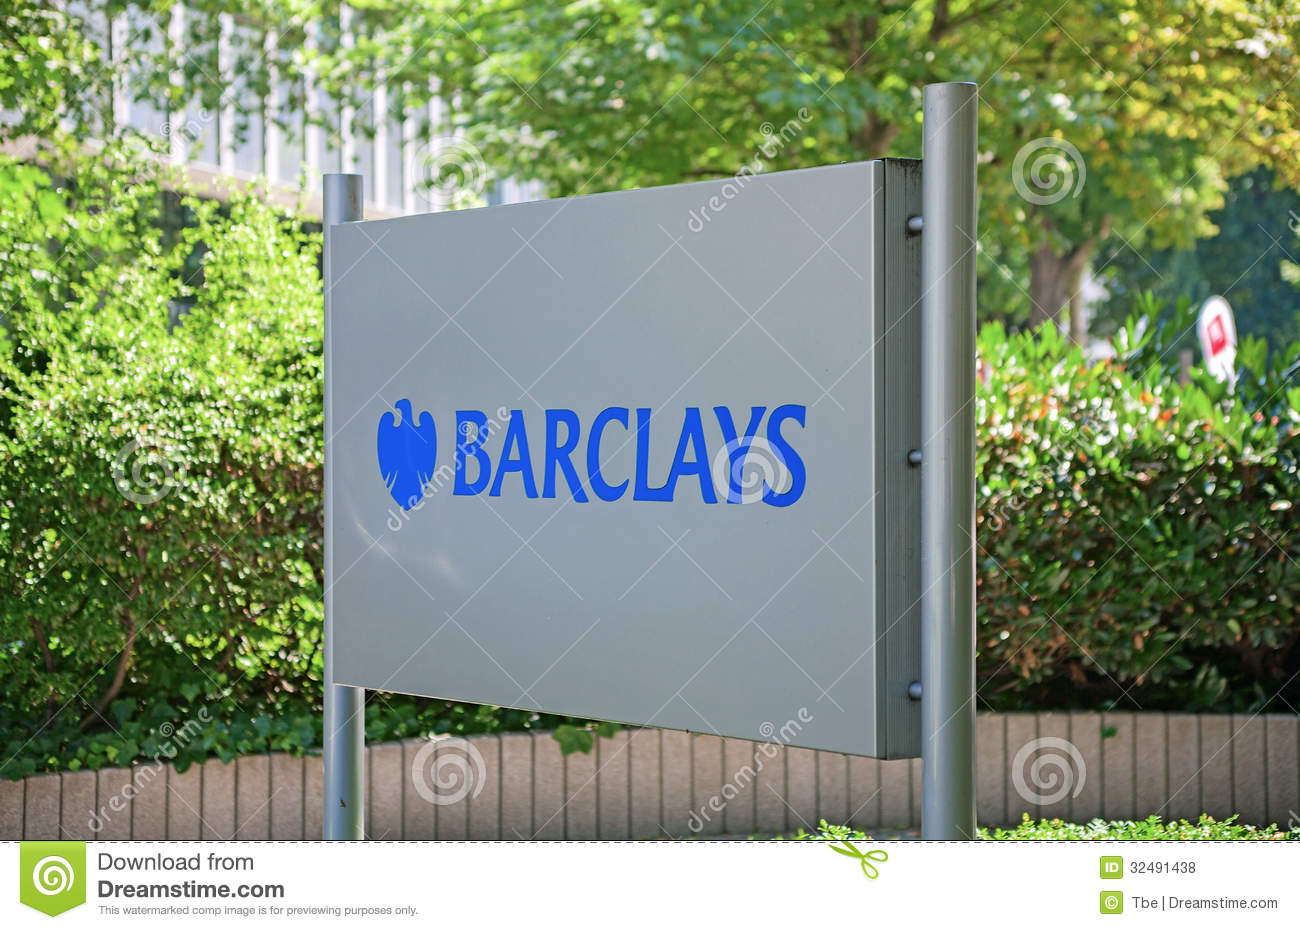 barclay bank frankfurt